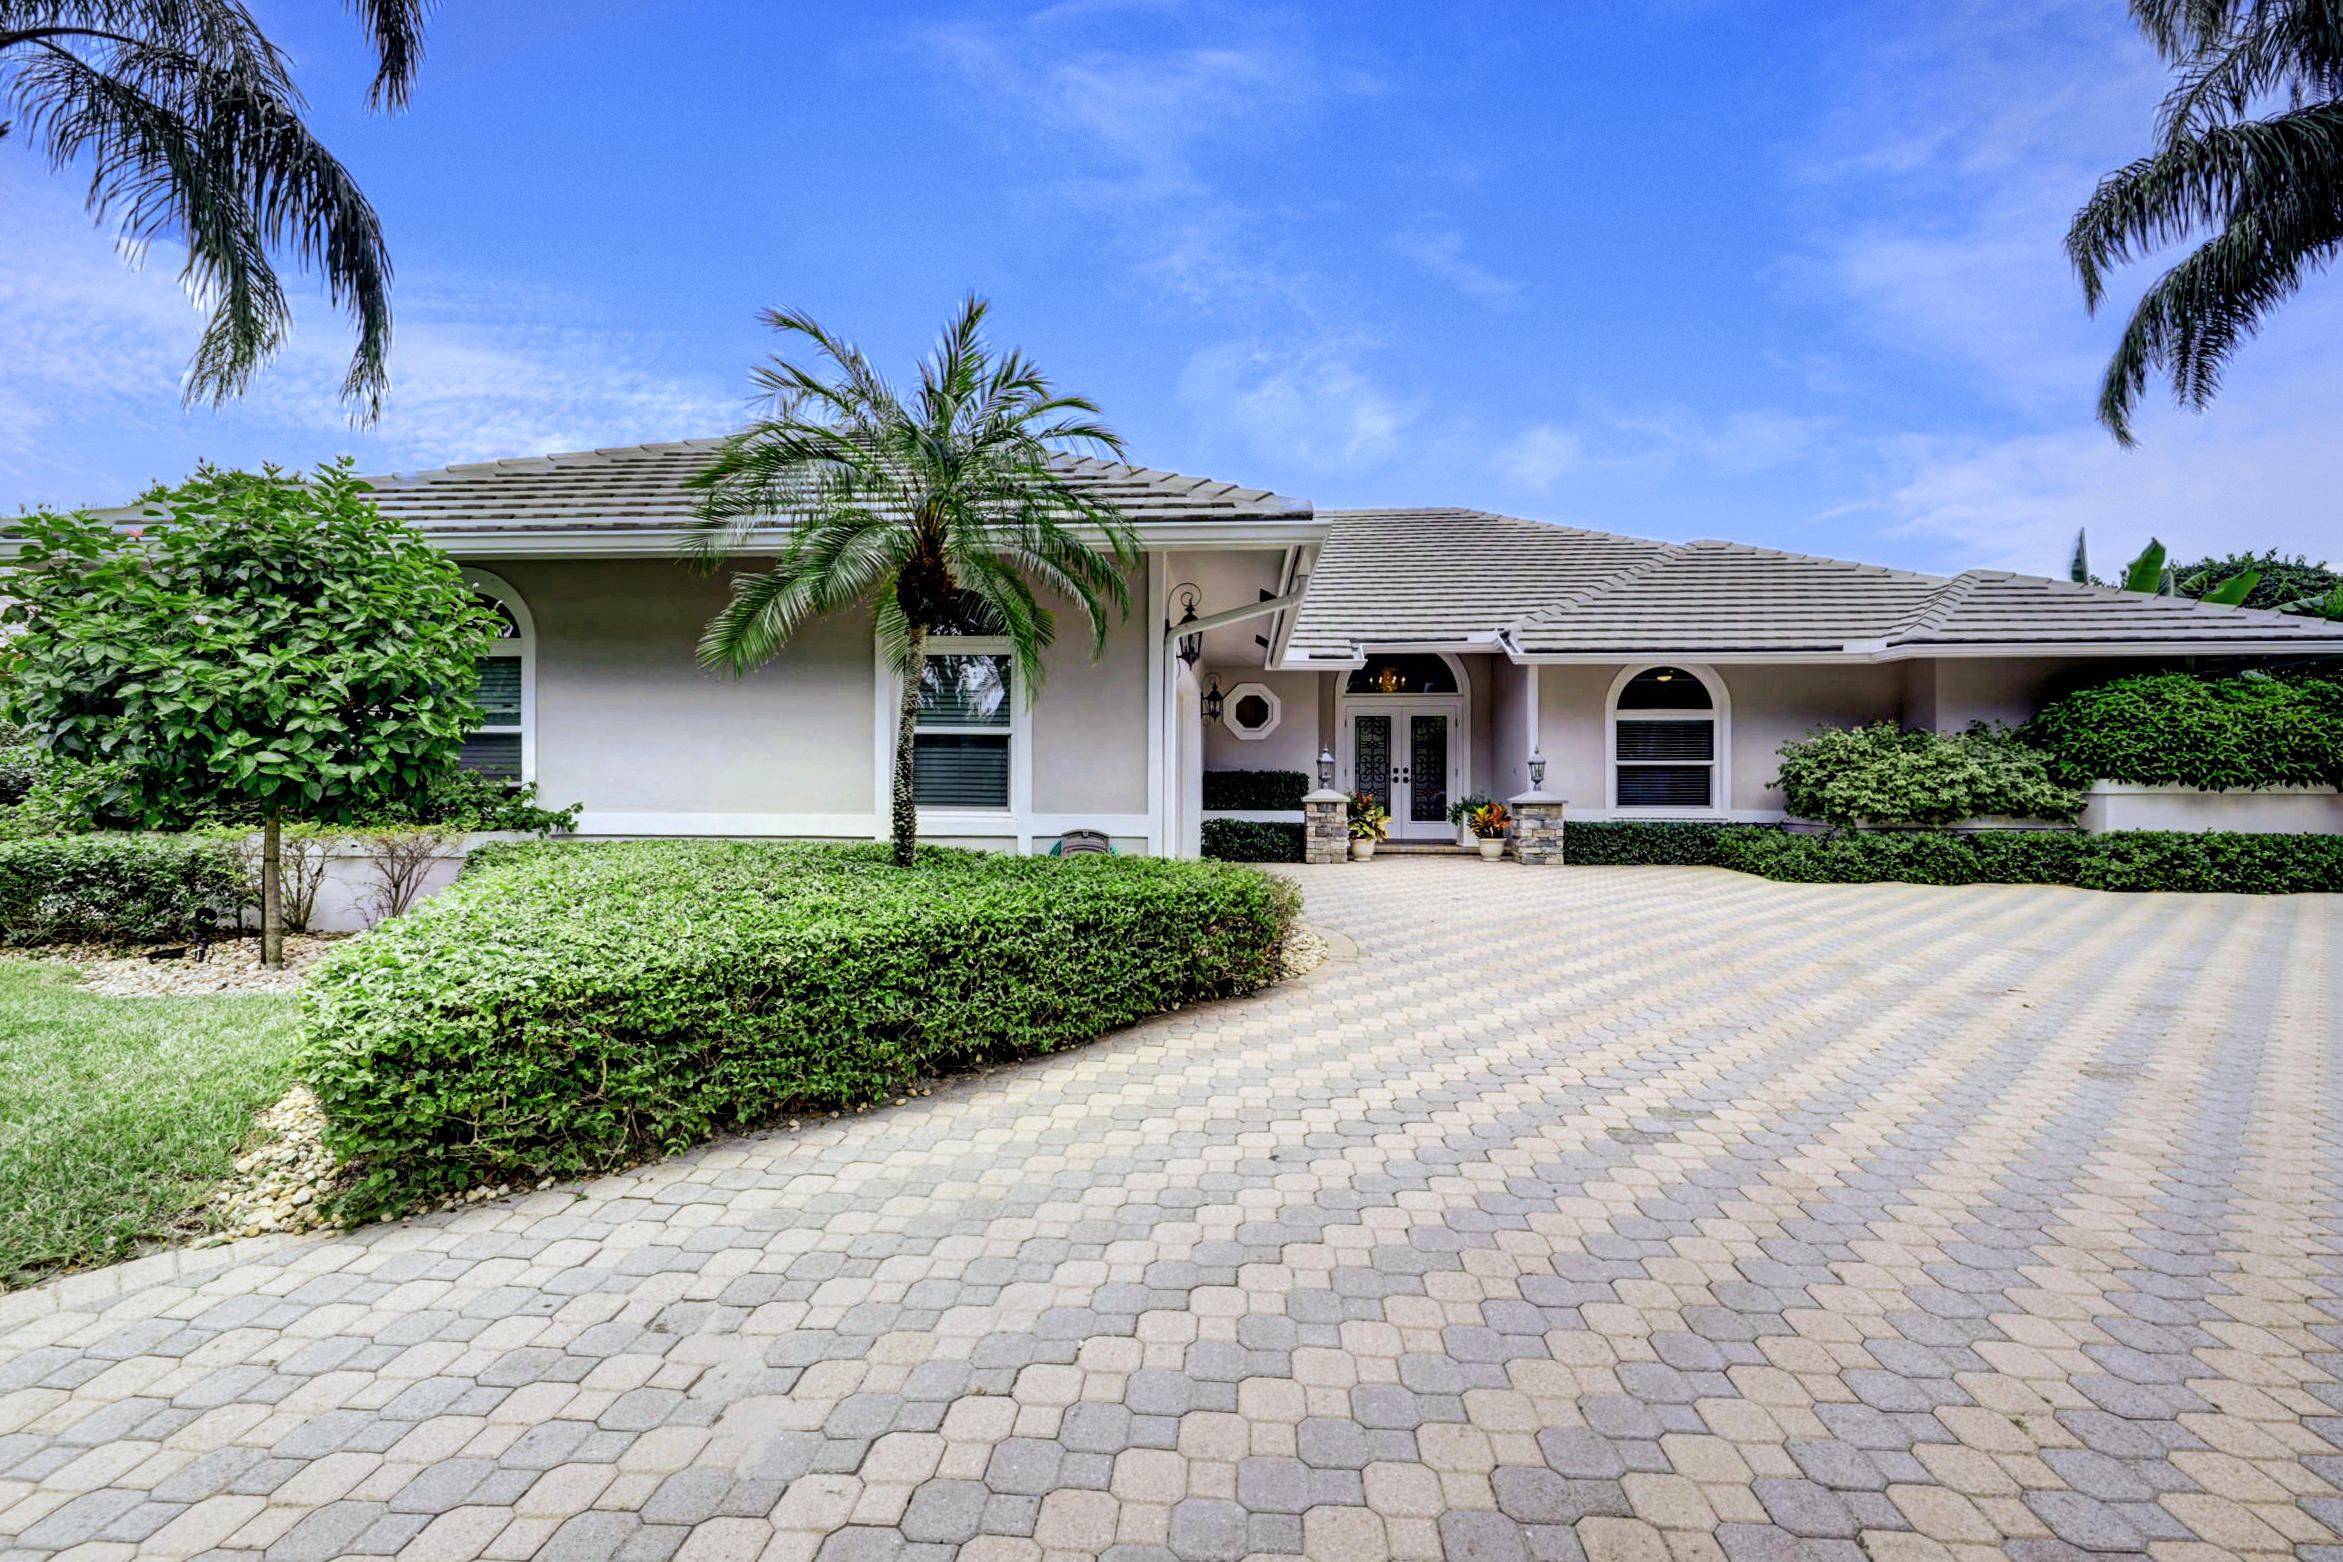 Home for sale in Heritage Oaks Tequesta Florida